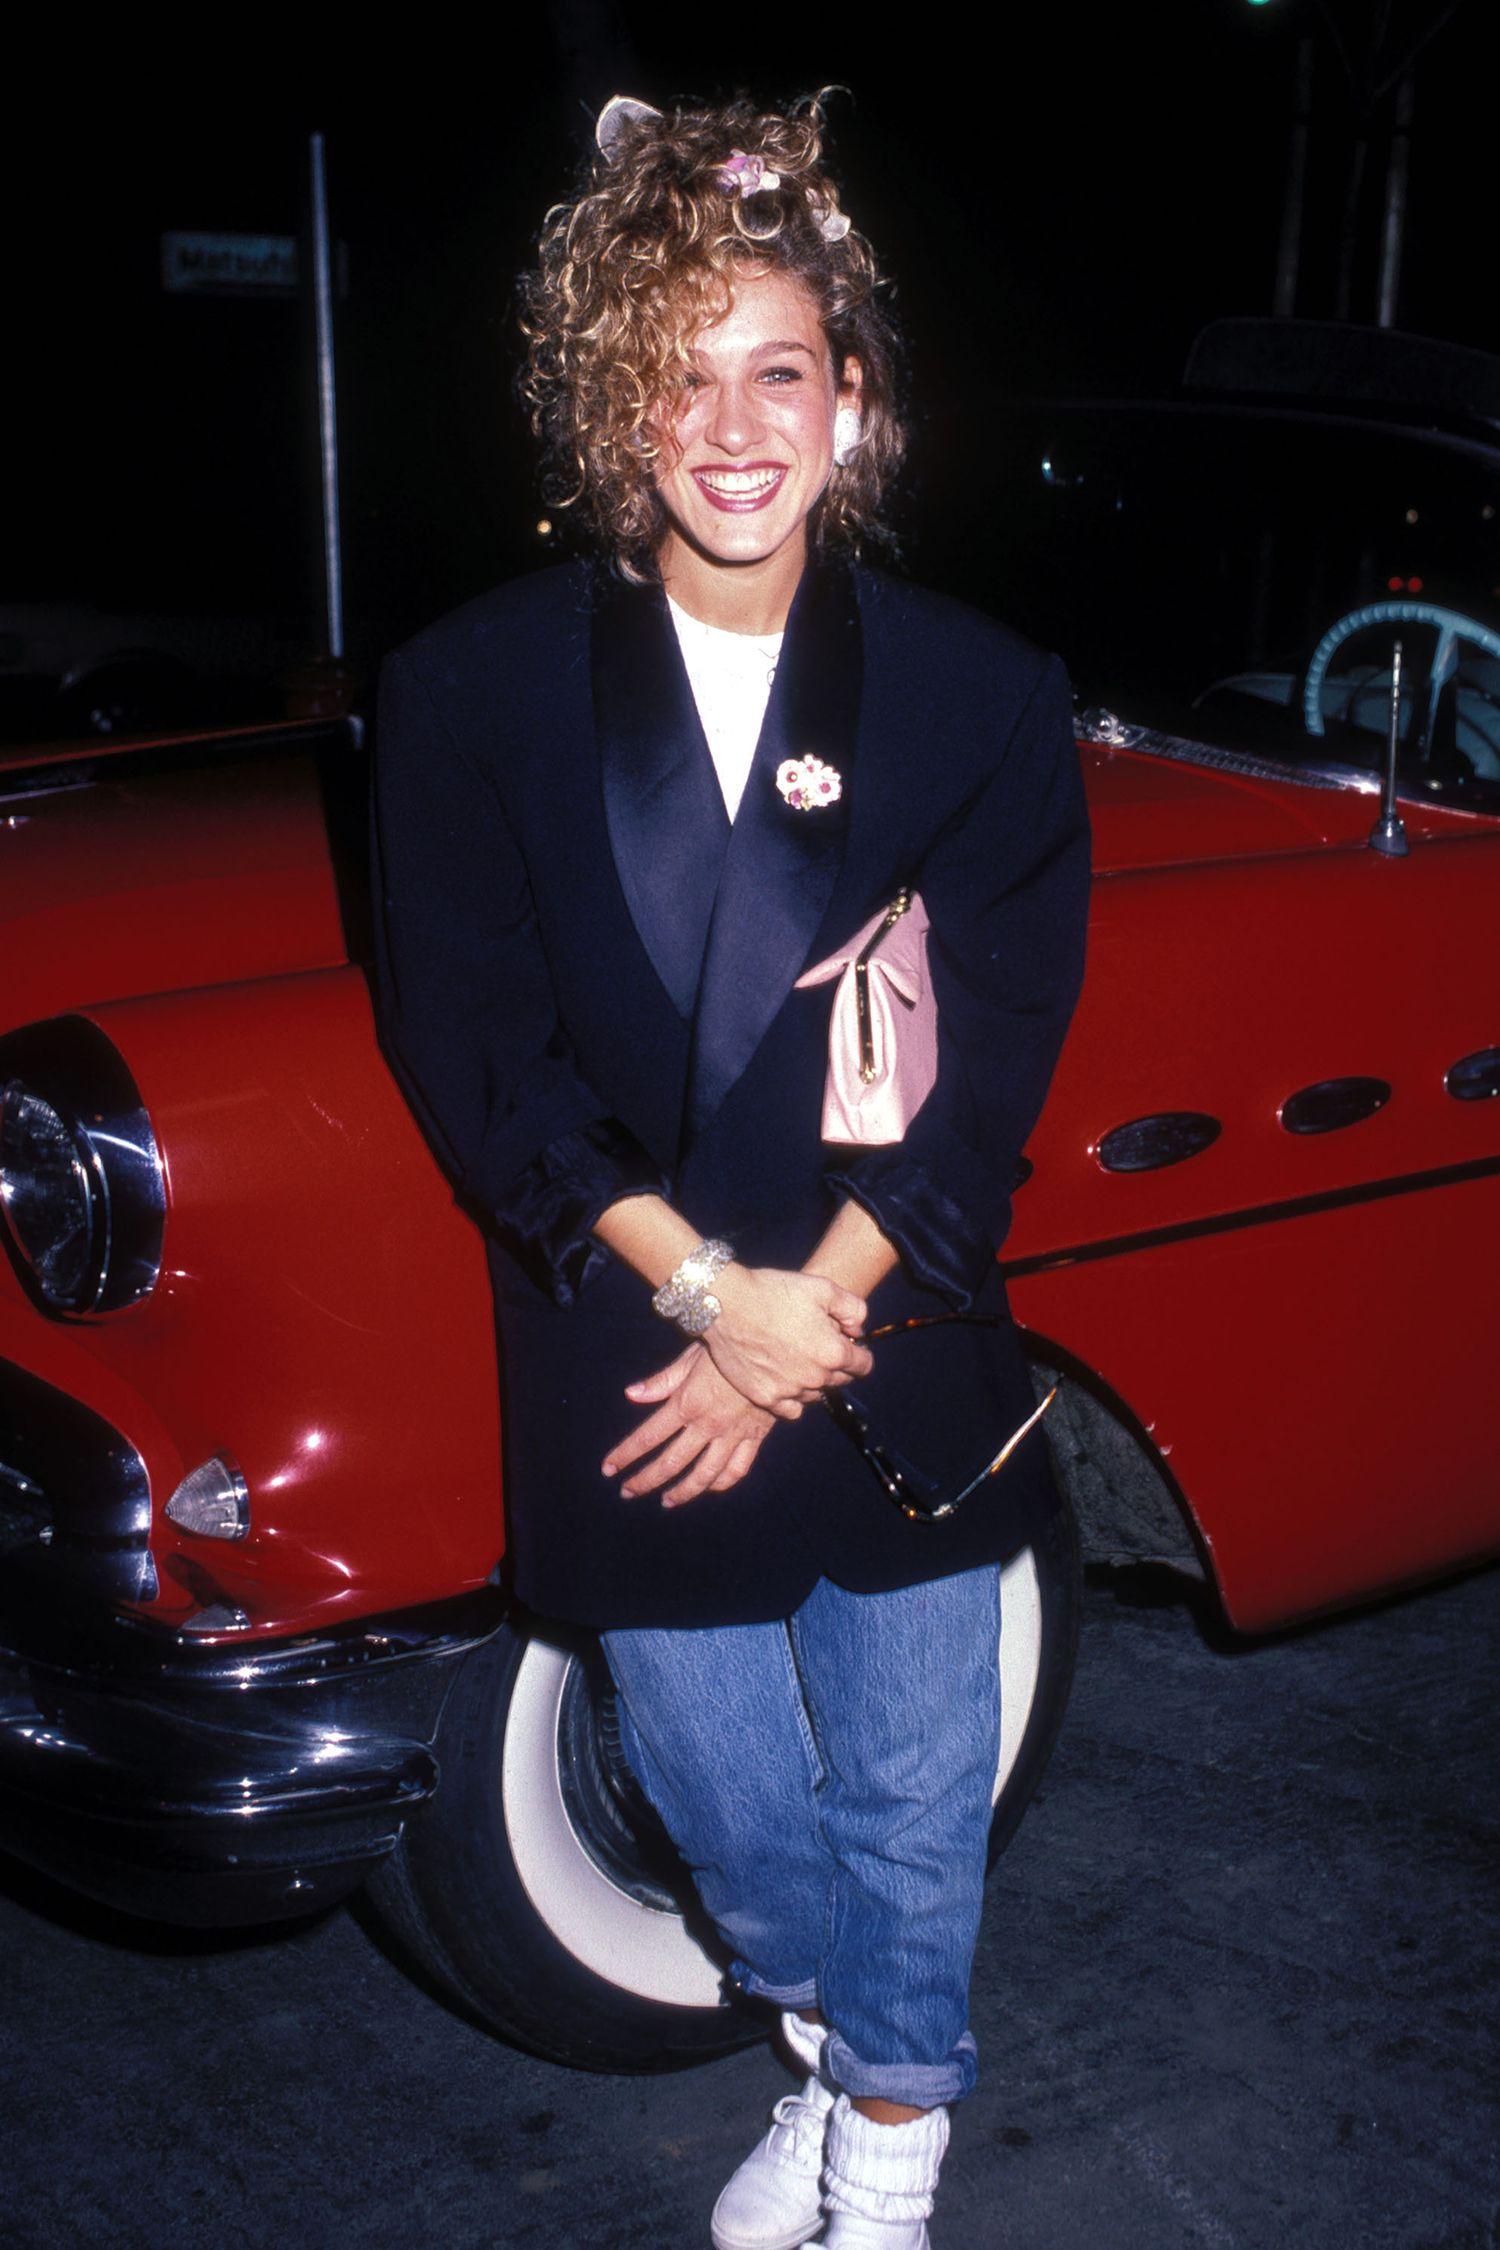 The Best Of 80s Fashion